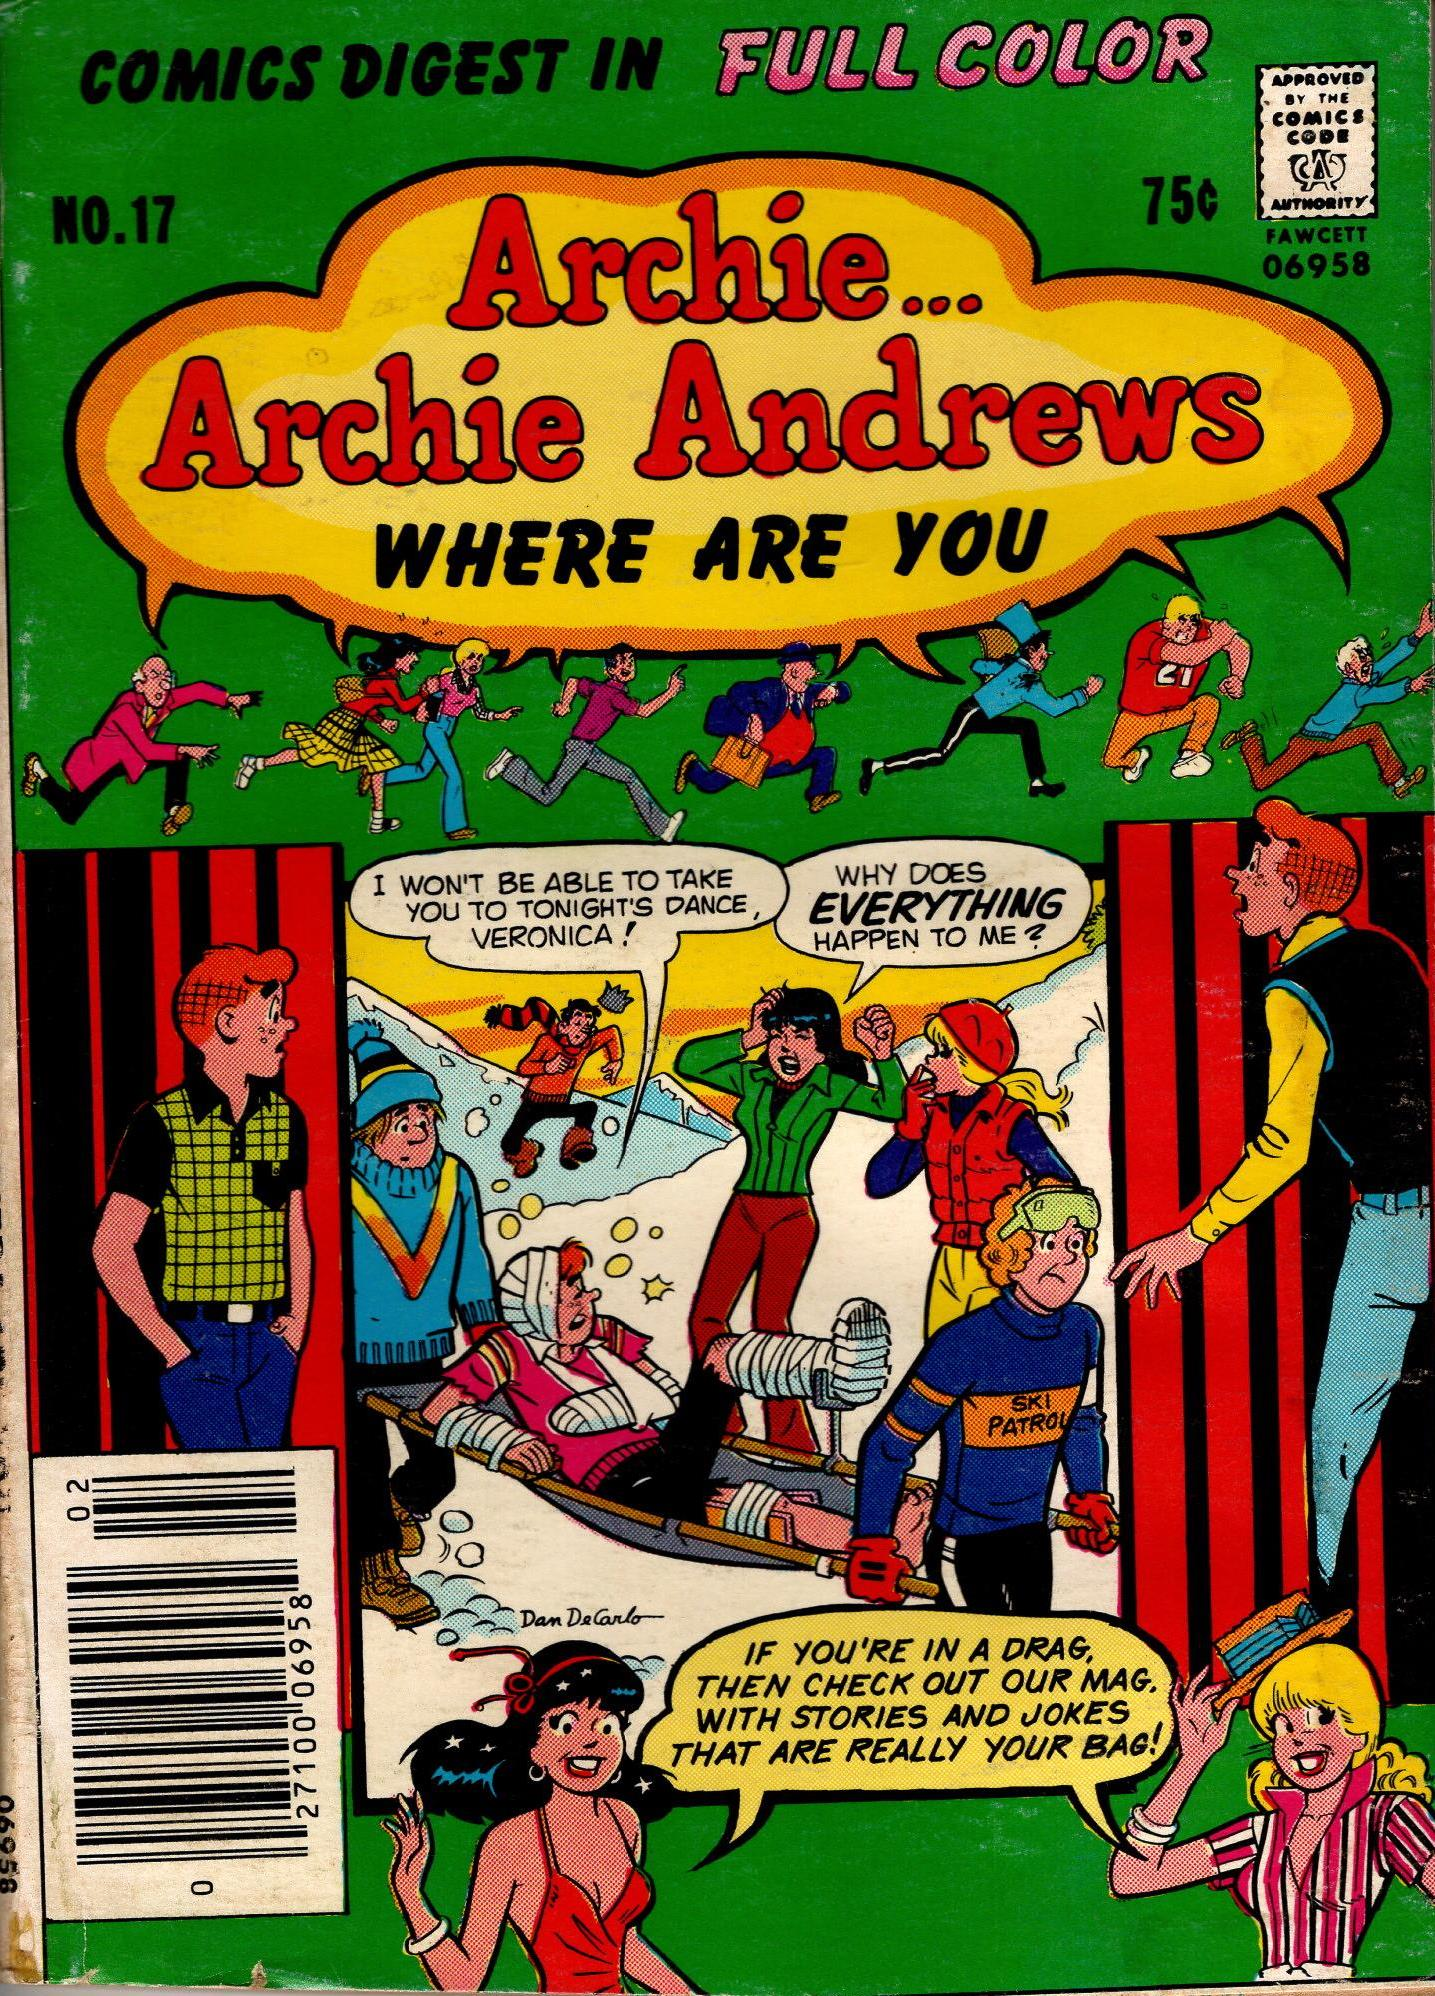 Image for ARCHIE ARCHIE ANDREWS WHERE ARE YOU DIGEST NO. 17